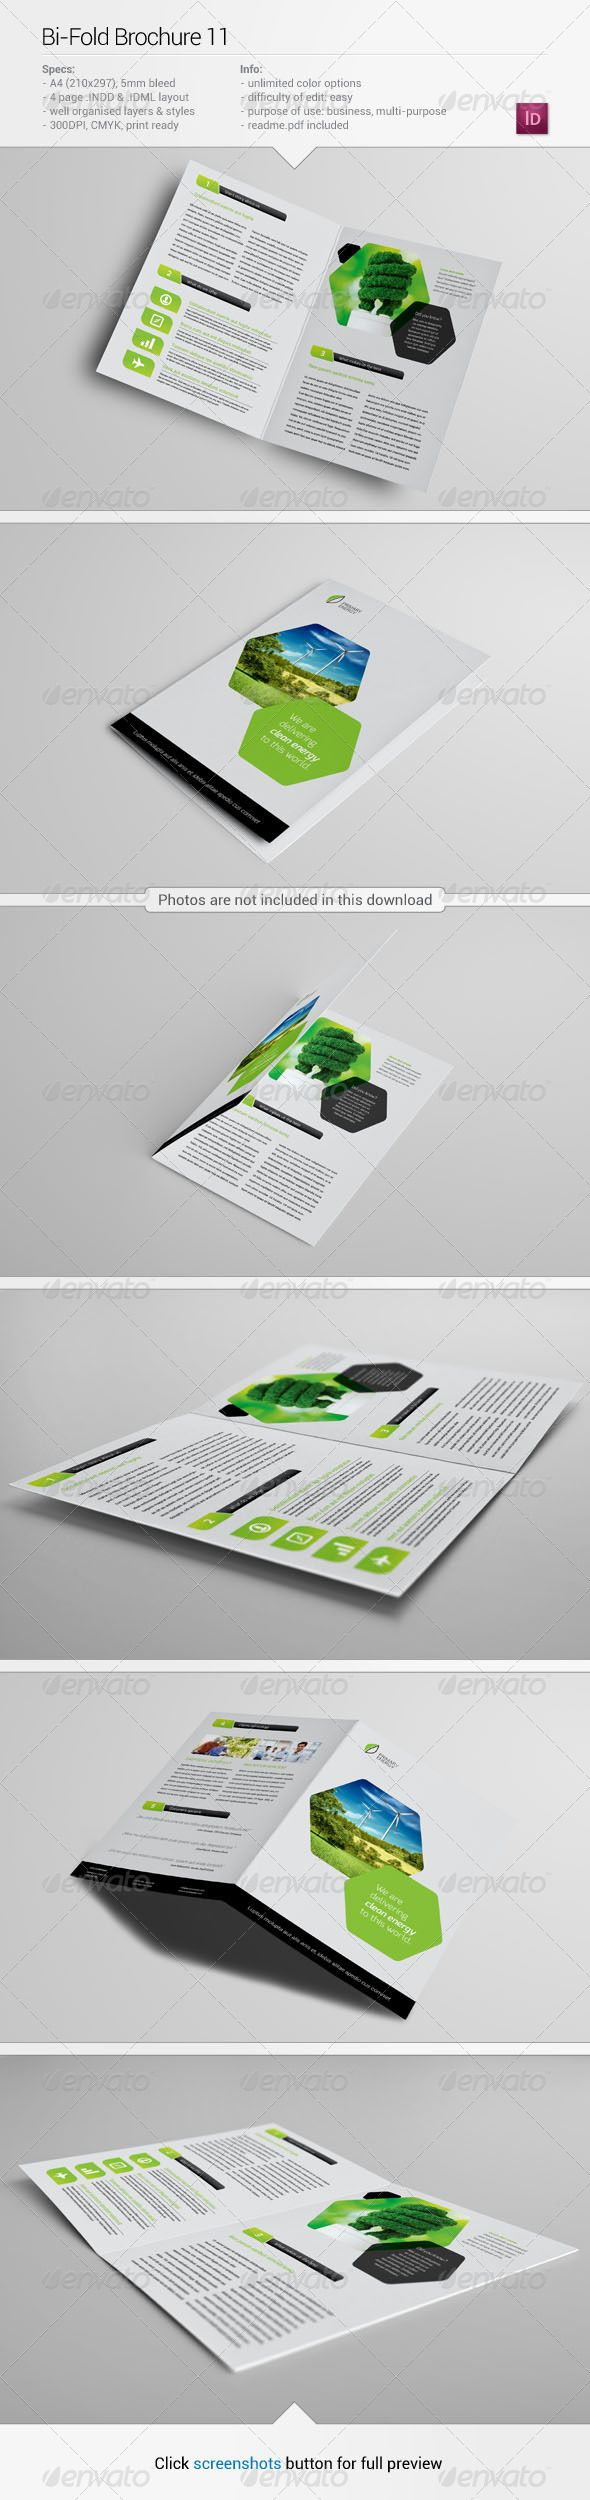 Bi-Fold Brochure 11 #GraphicRiver About this item Specifications: + 420×297mm (2x A4), + 300 dpi, + CMYK, + Bi-fold, + Unlimited color options, + 5mm bleeds, + Well organised layers, + Fully editable InDesign .INDD and .IDML files, + Photos and fonts are NOT included (links below and in Read Me file). Fonts used: Roboto – .fontsquirrel /fonts/roboto Exo – .fontsquirrel /fonts/exo If you have any questions or a problem with any of my files don't hesistate to contact me via my GraphicRiver…